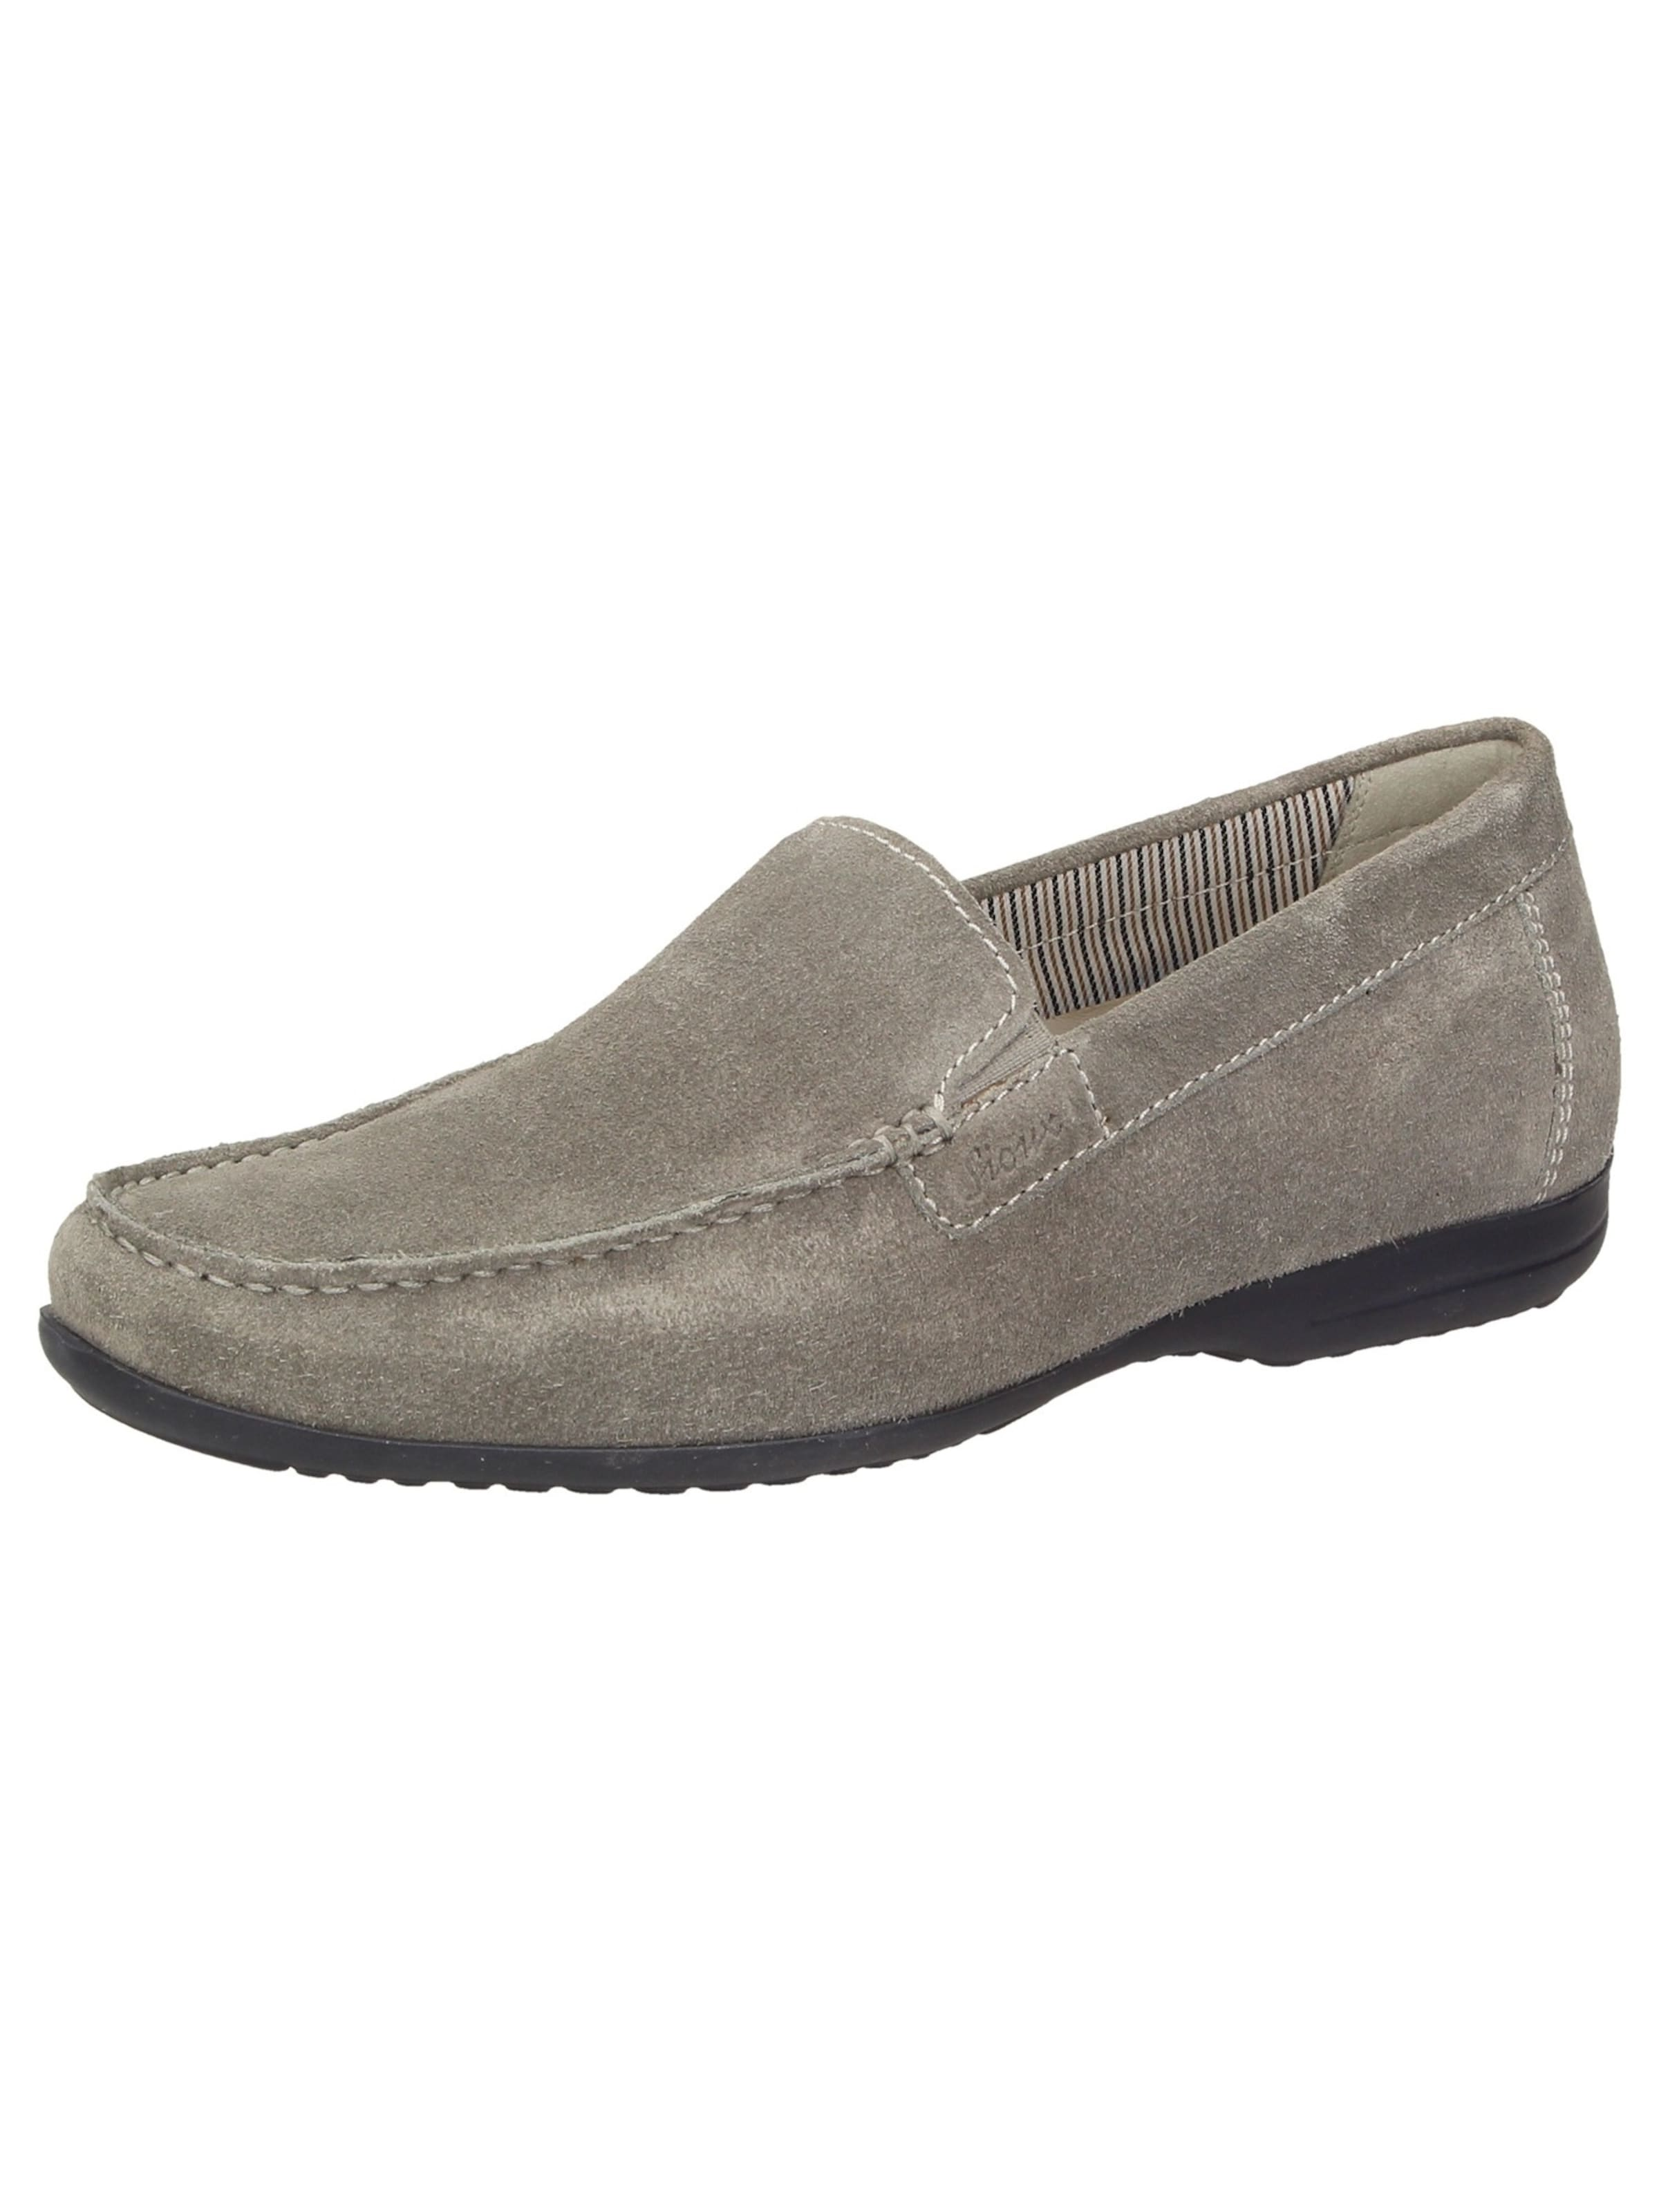 Grau In Sioux 'giumelo Slipper 700' drexBCo